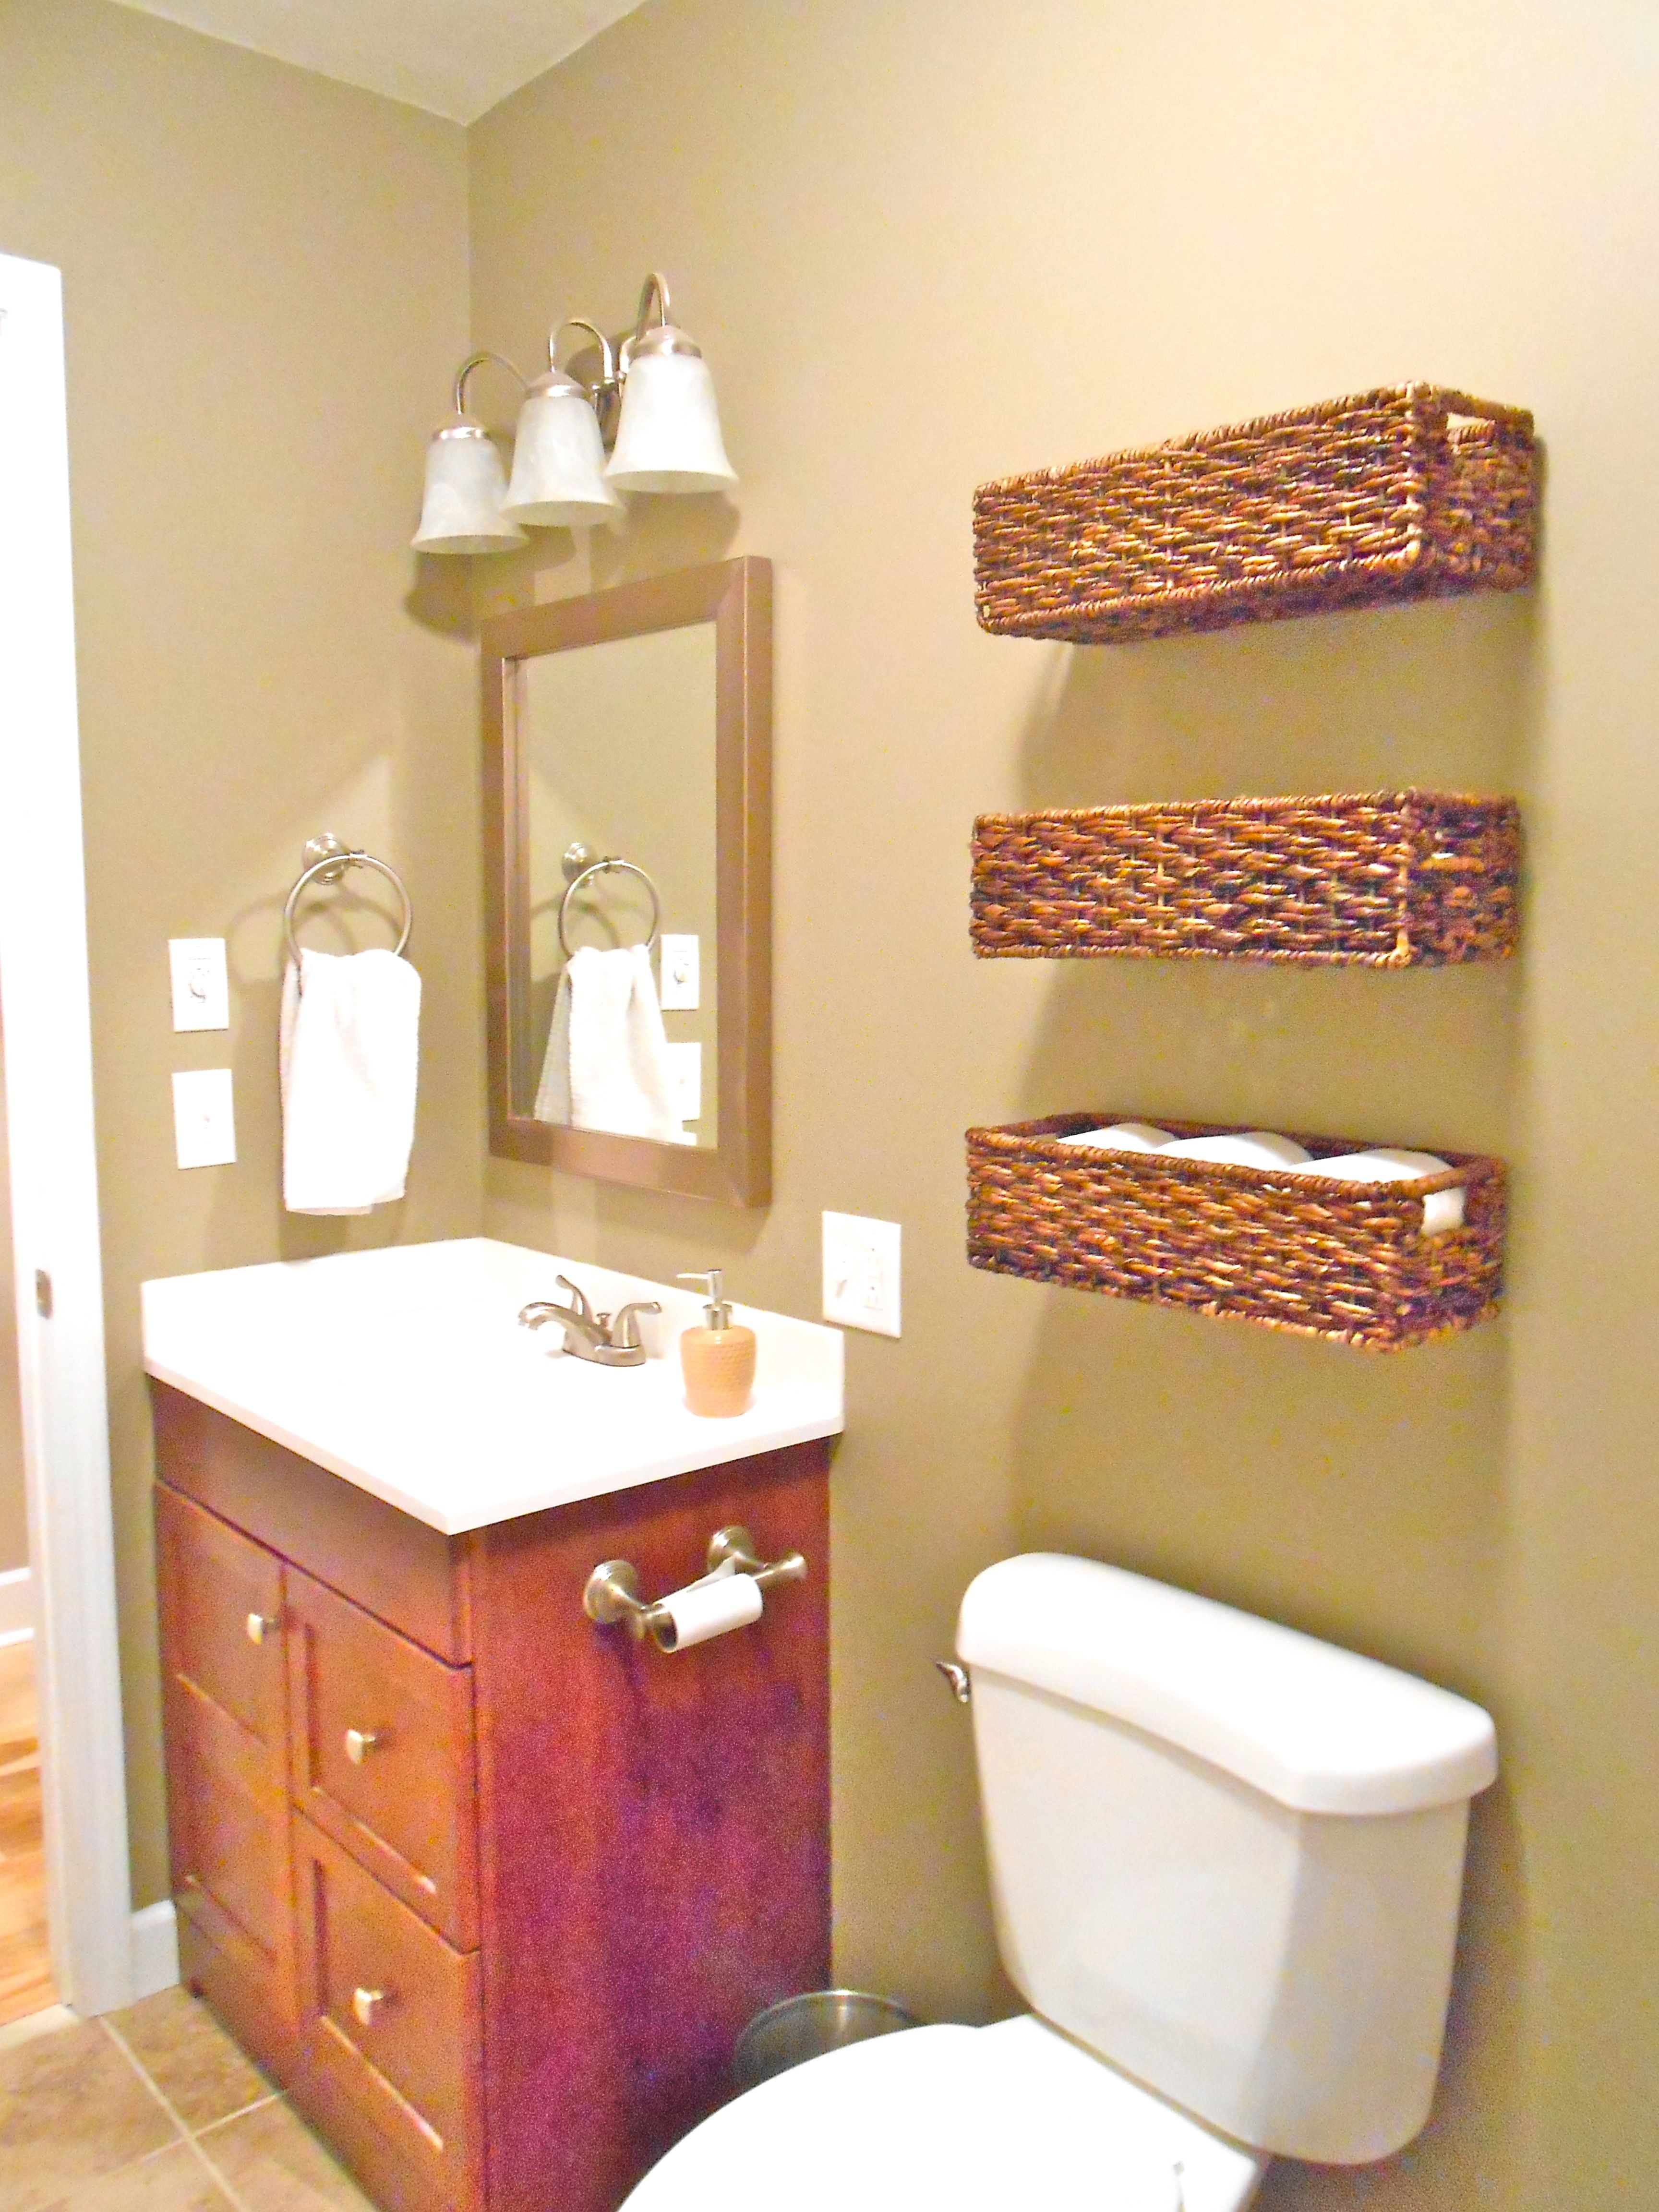 wooden baskets for bathroom wall - Google Search | Home | Pinterest ...